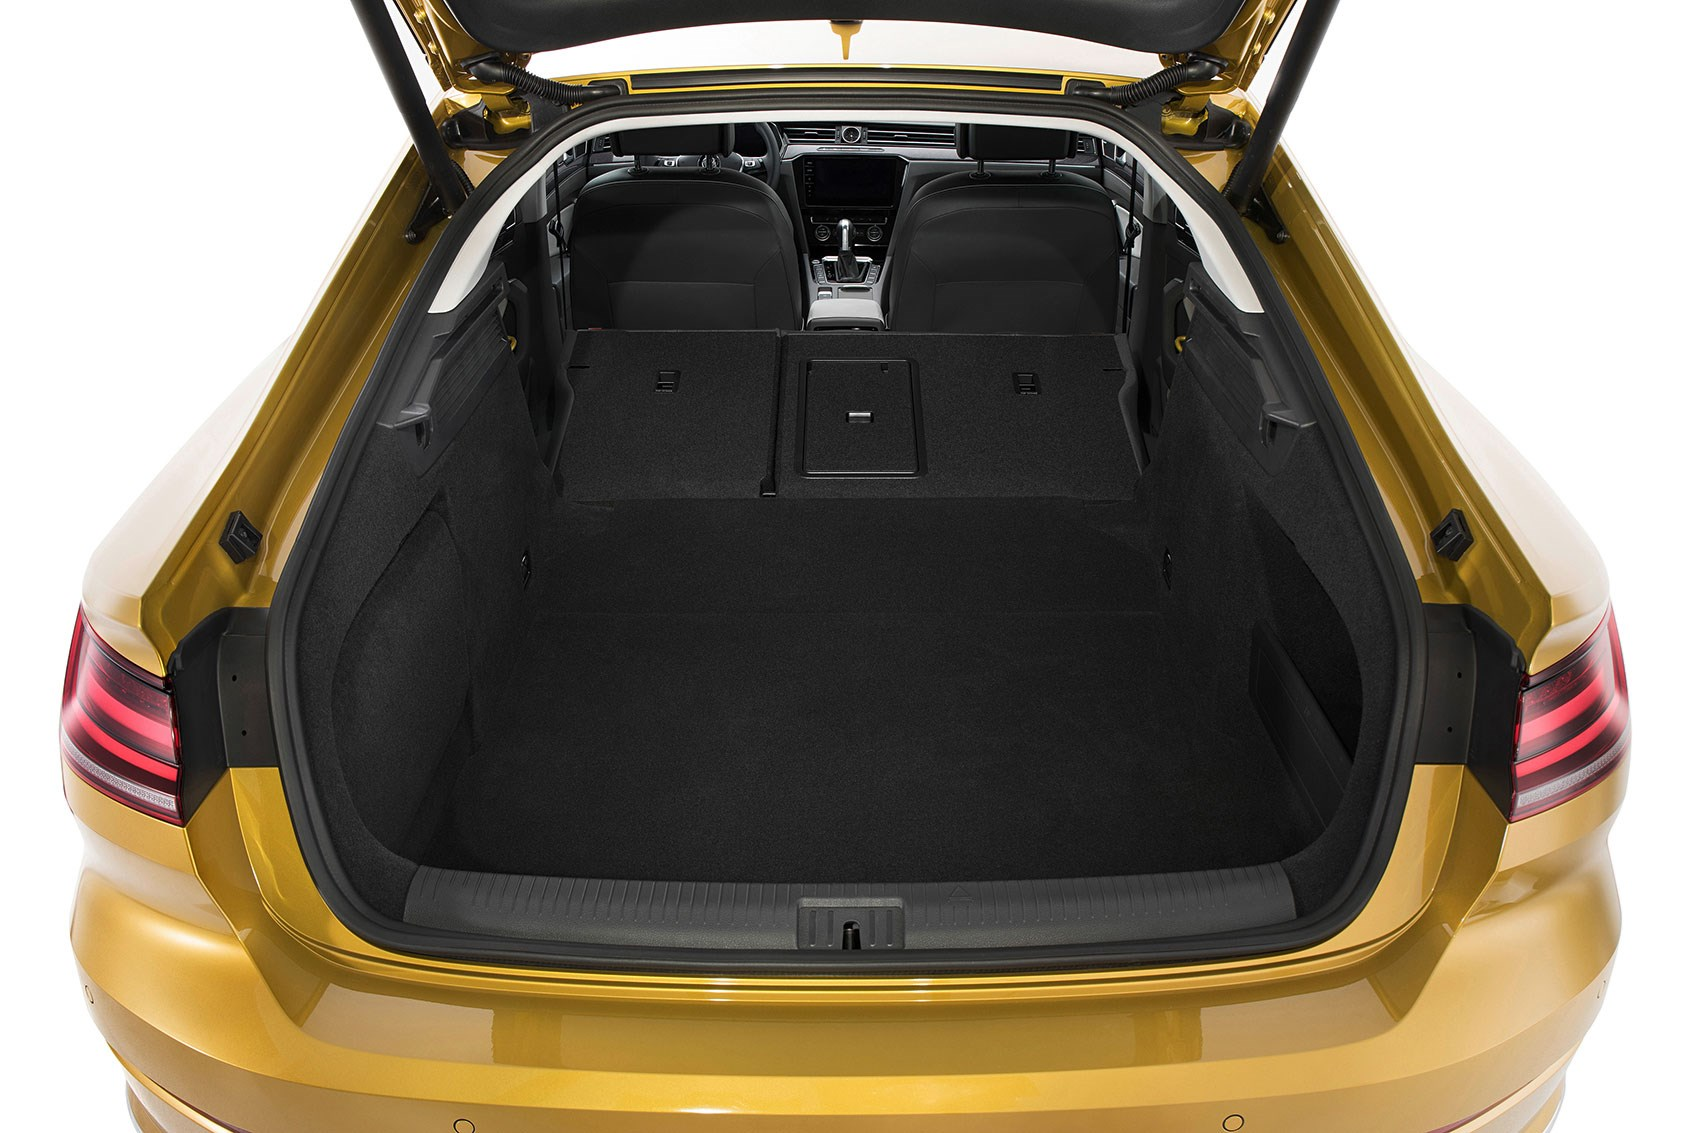 A five-door tailgate for VW Arteon: it's a practical family car